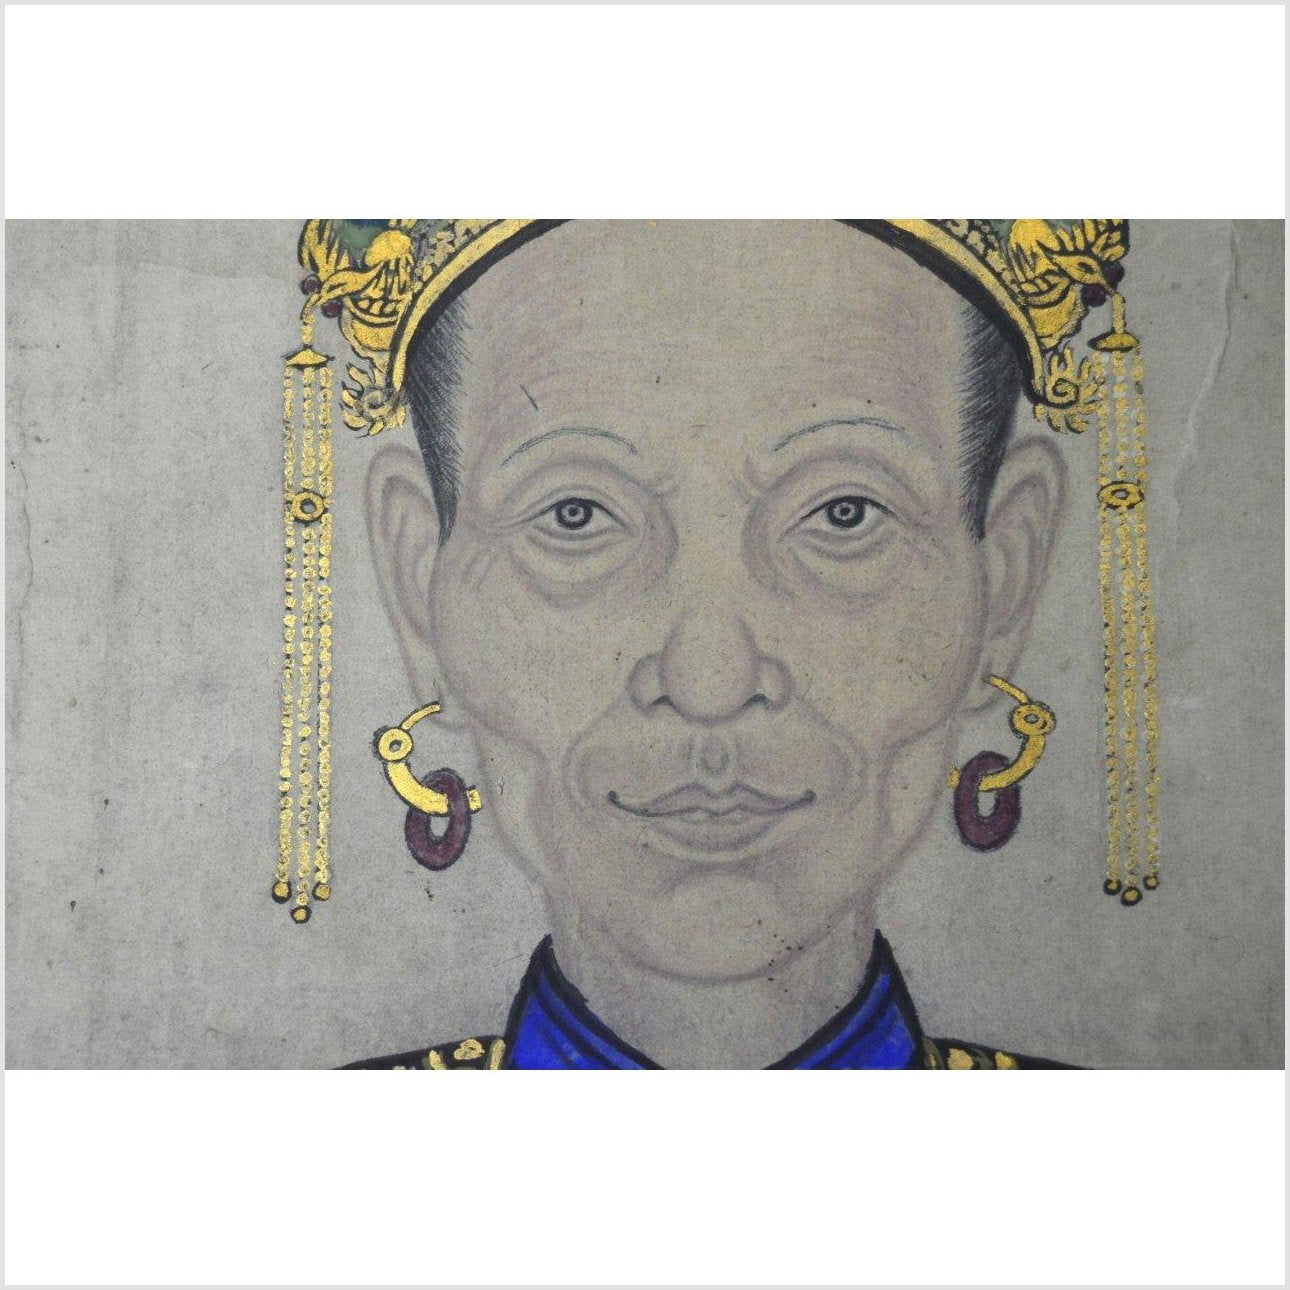 Chinese Ancestors Painting on Linen Canvas